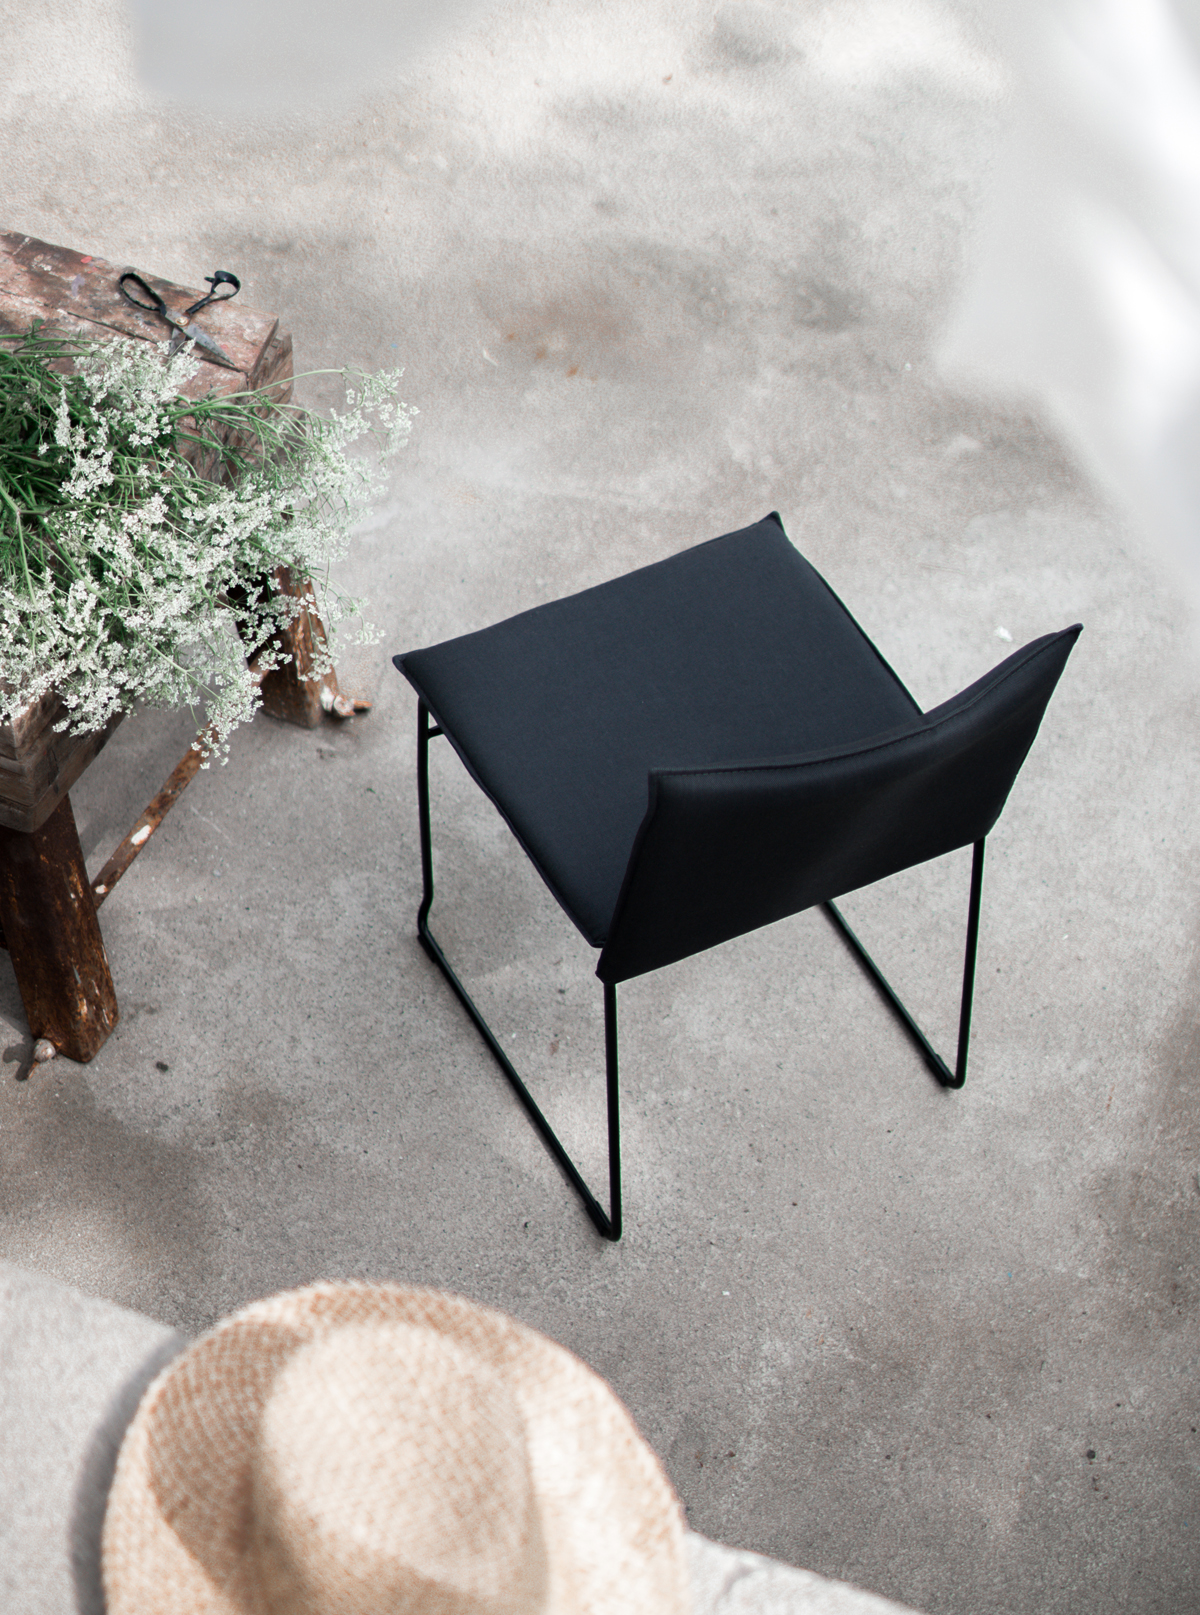 2K2H_outdoor-diningchair-Kyst-S-20